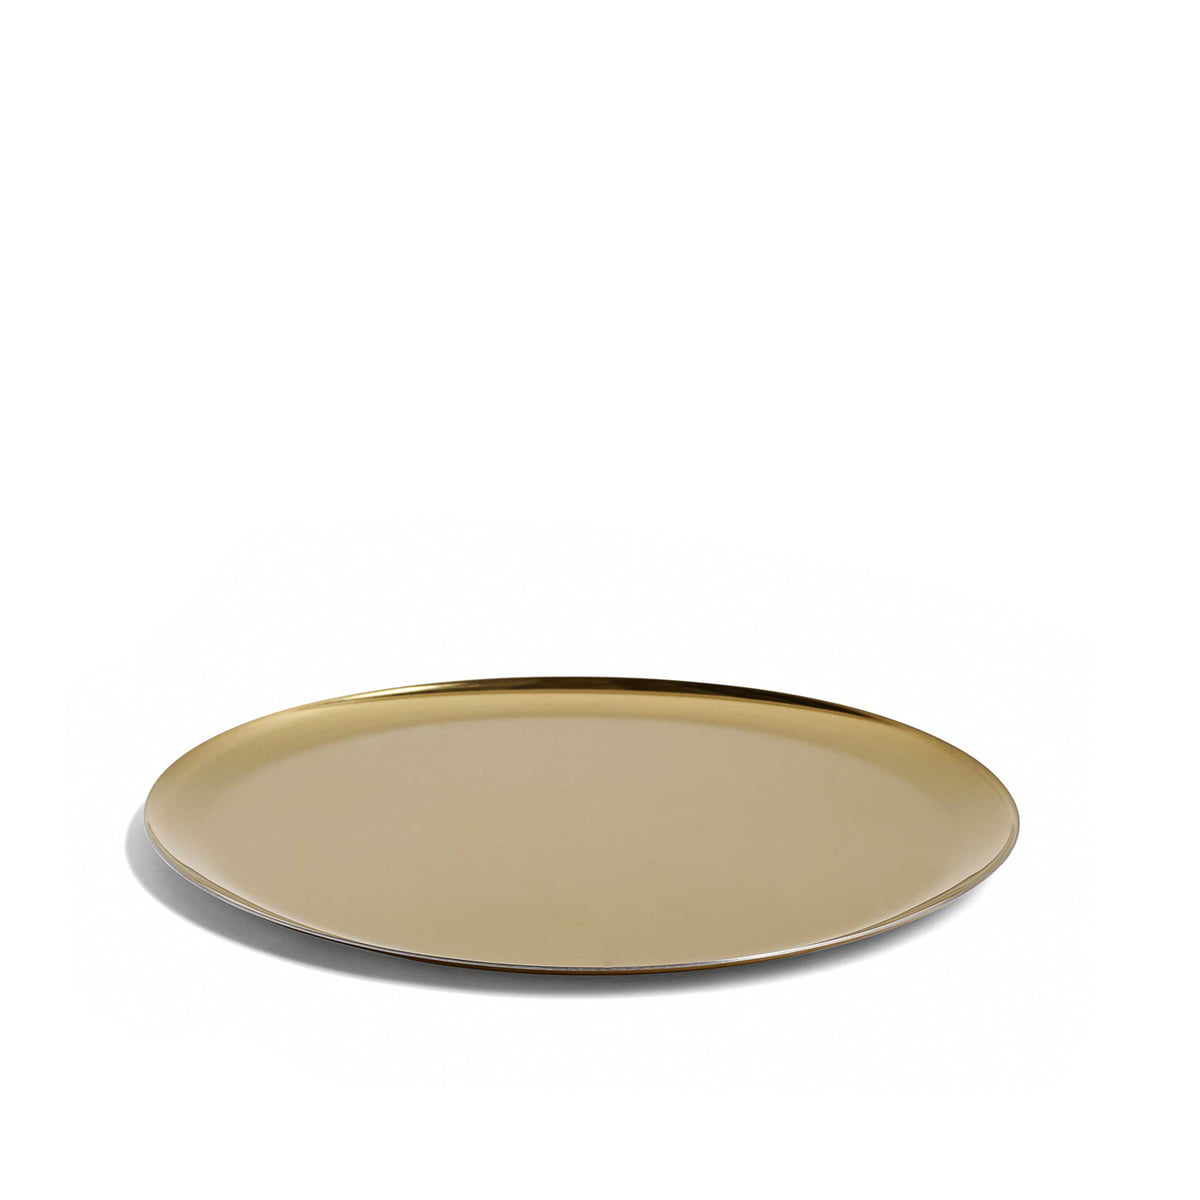 buy the serving tray by hay online